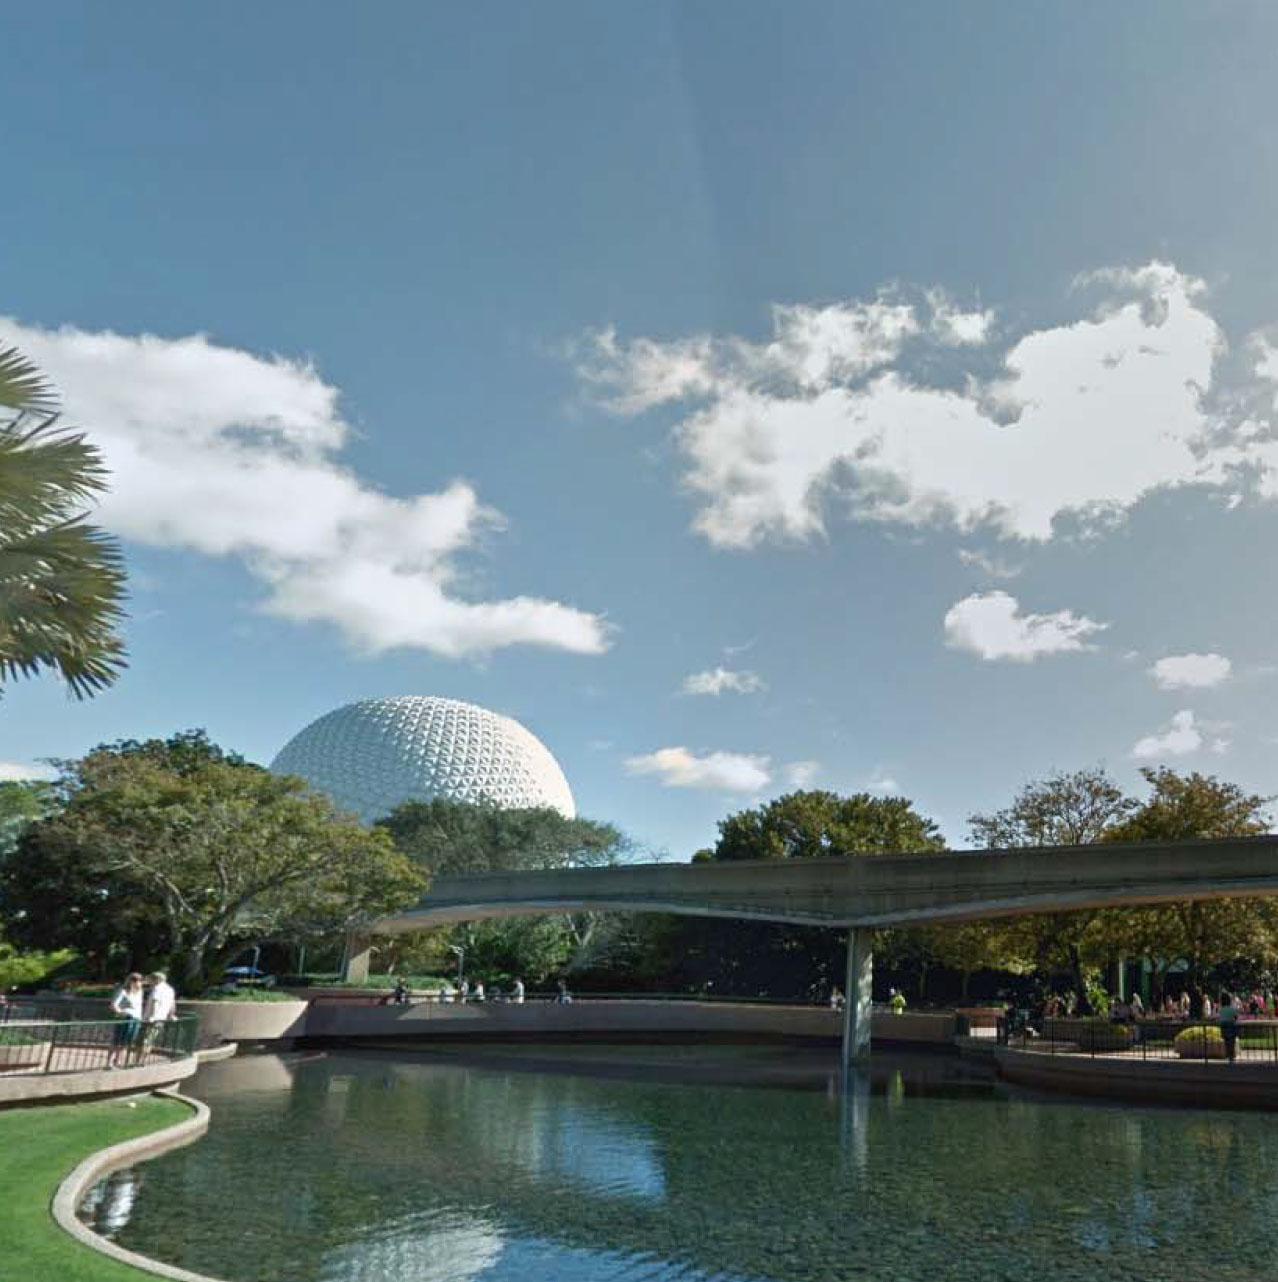 Epcot Lake Water & Fireworks Display - Location: Epcot Center - Orlando, FLDesign Firm: WET DESIGN